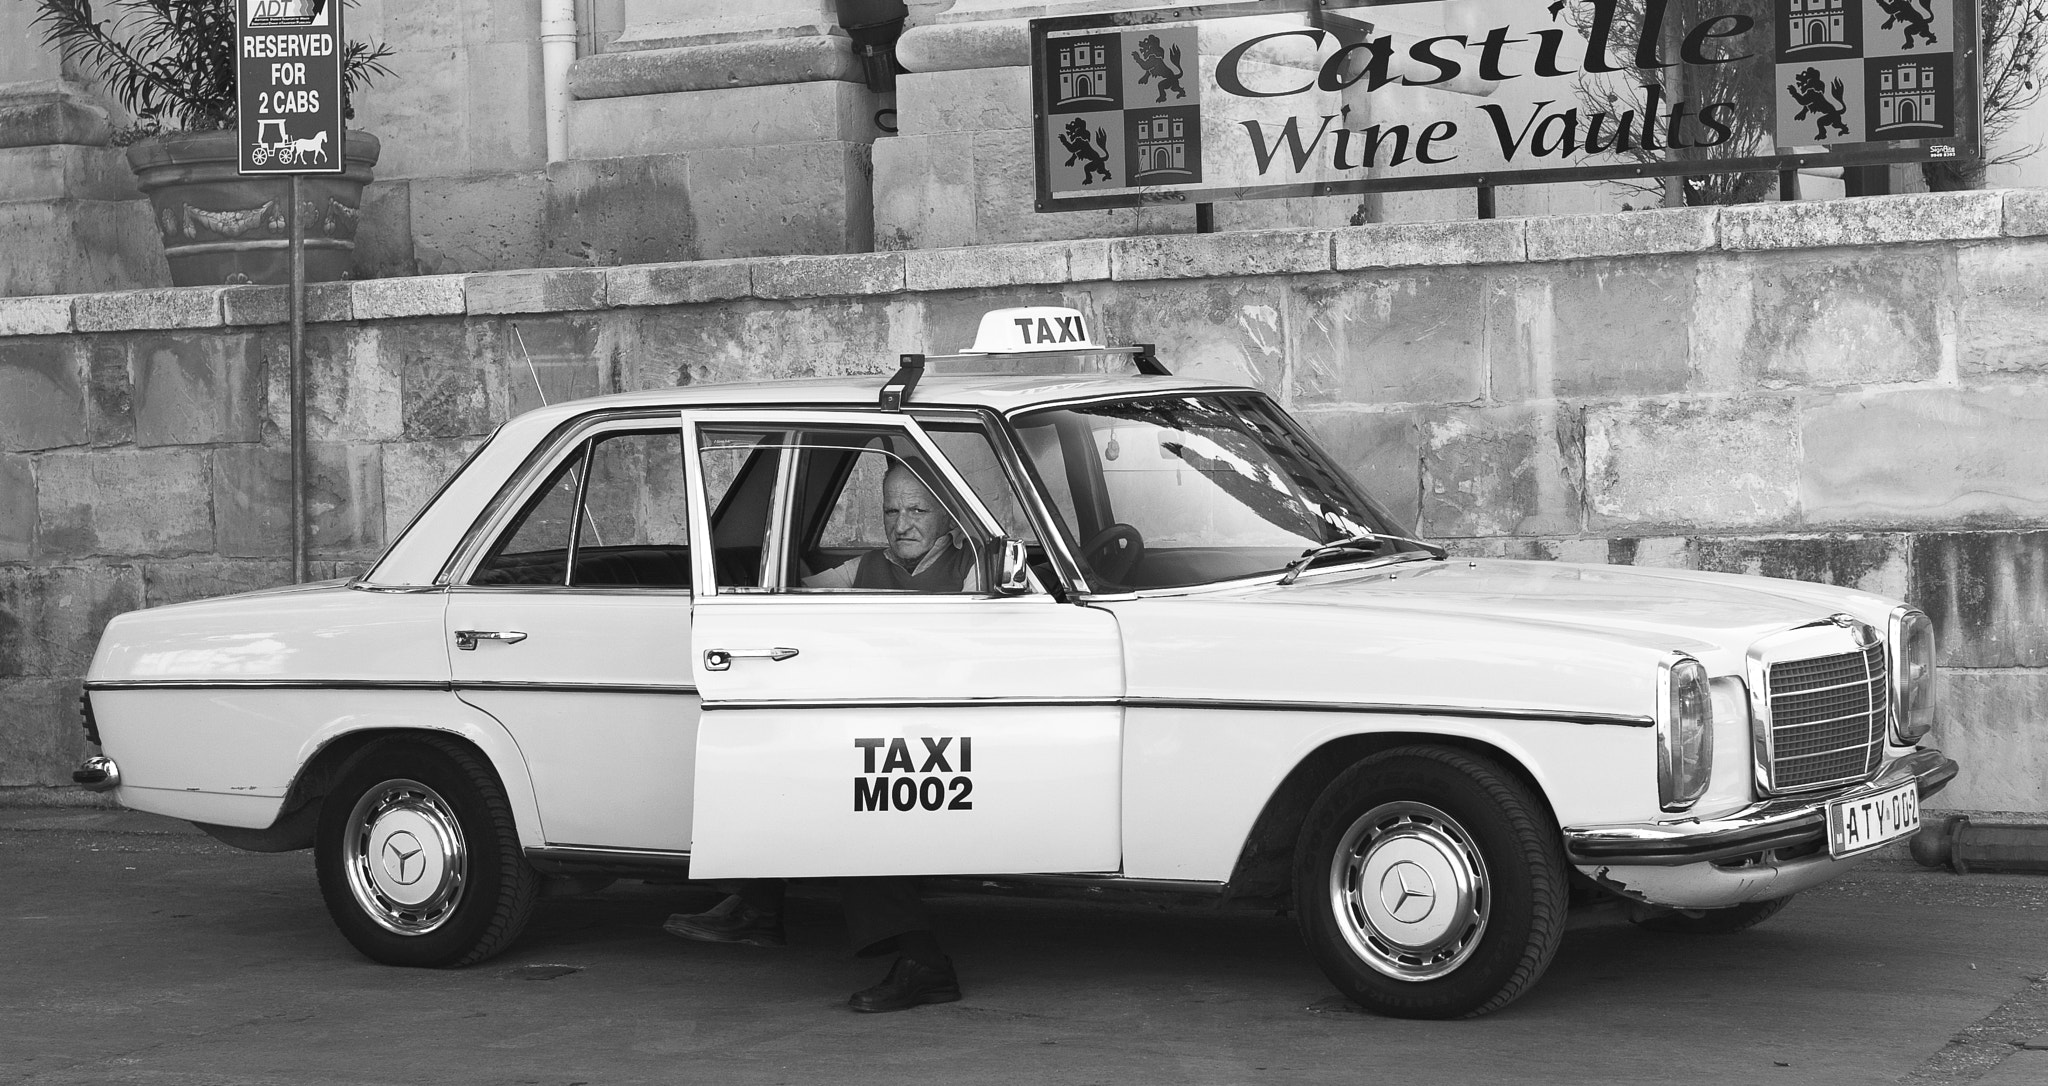 Photograph Your friendly Maltese taxi driver by Carl Bretteville on 500px